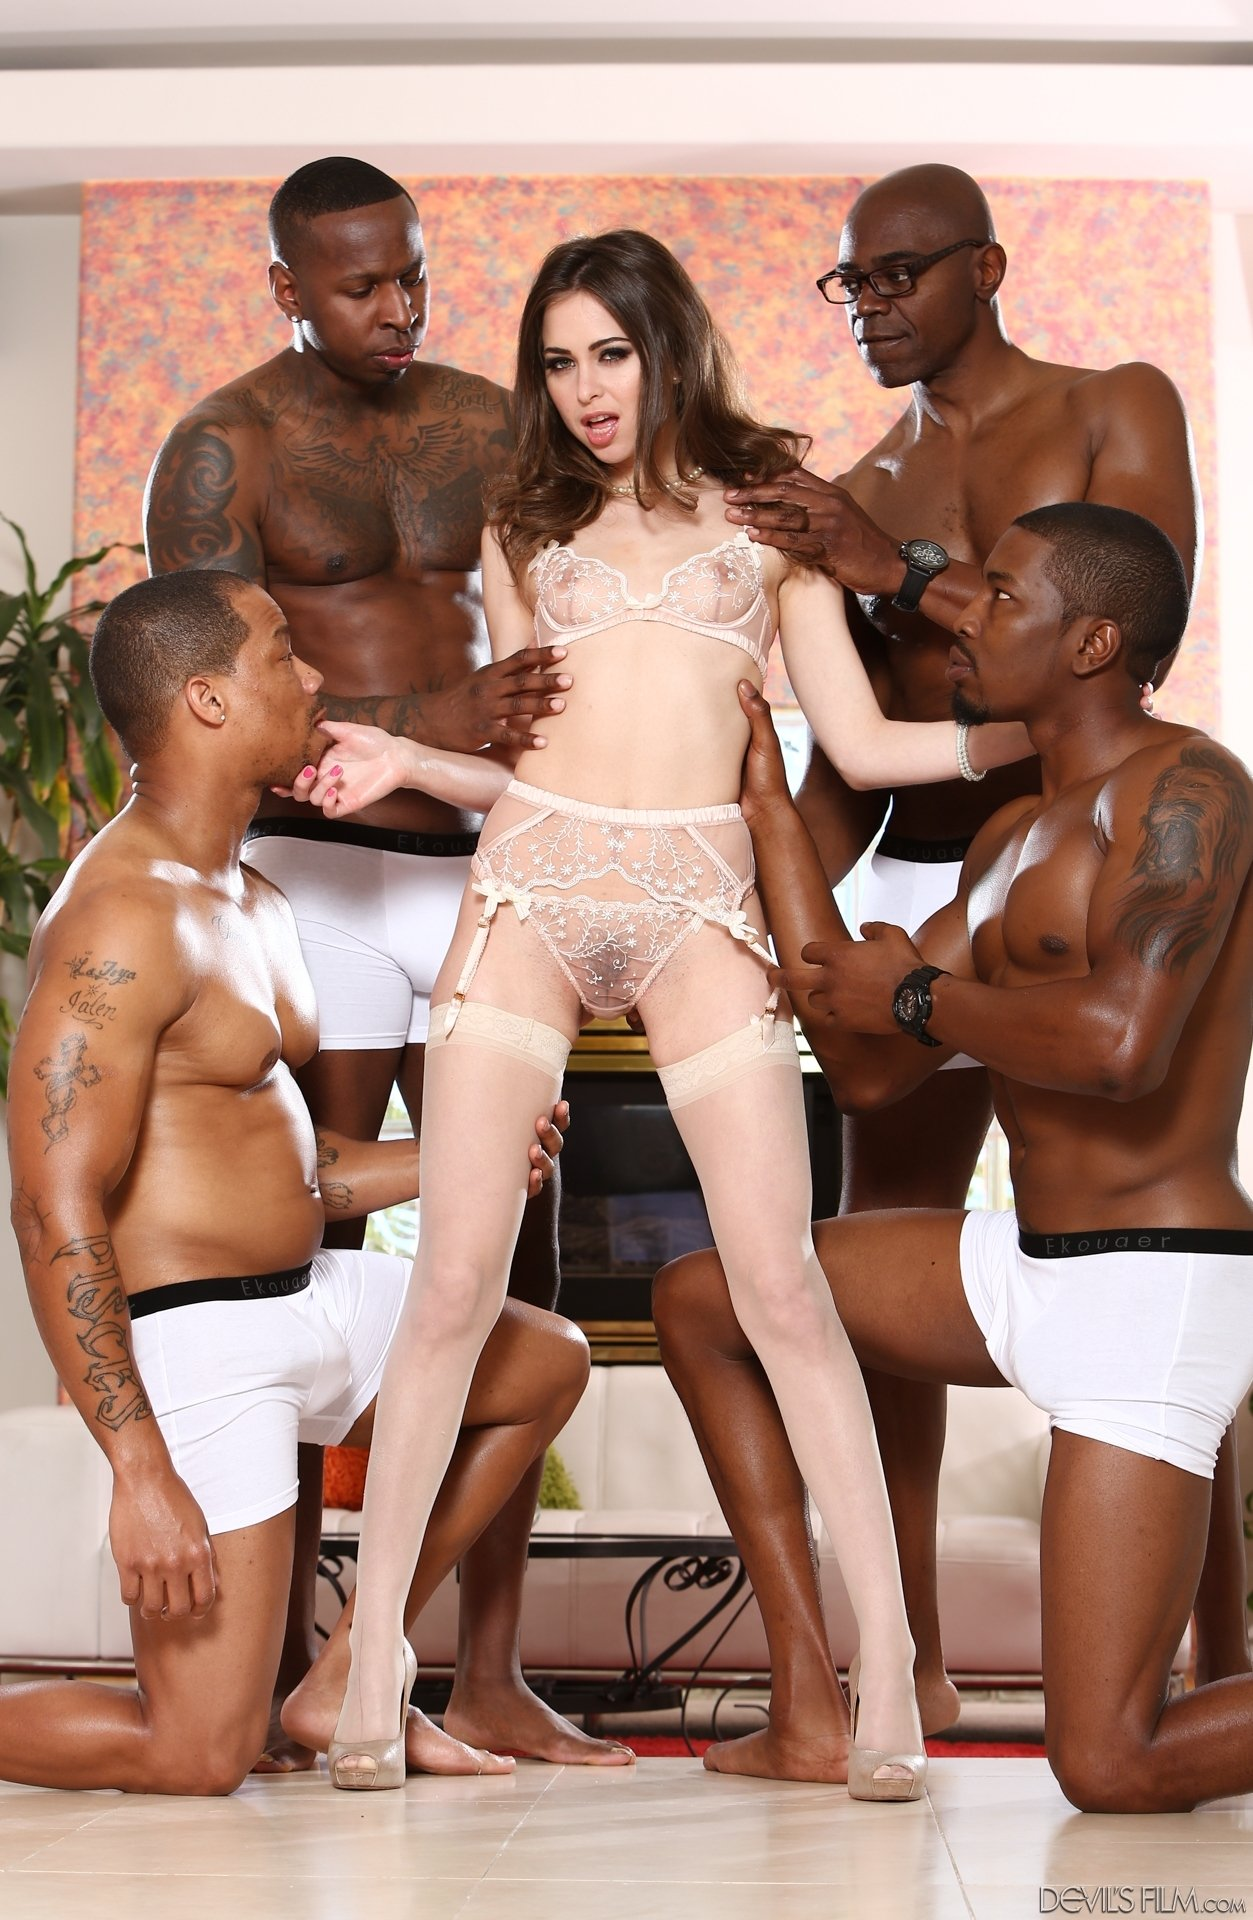 Indian forced wife swap xvideos dawnlod5